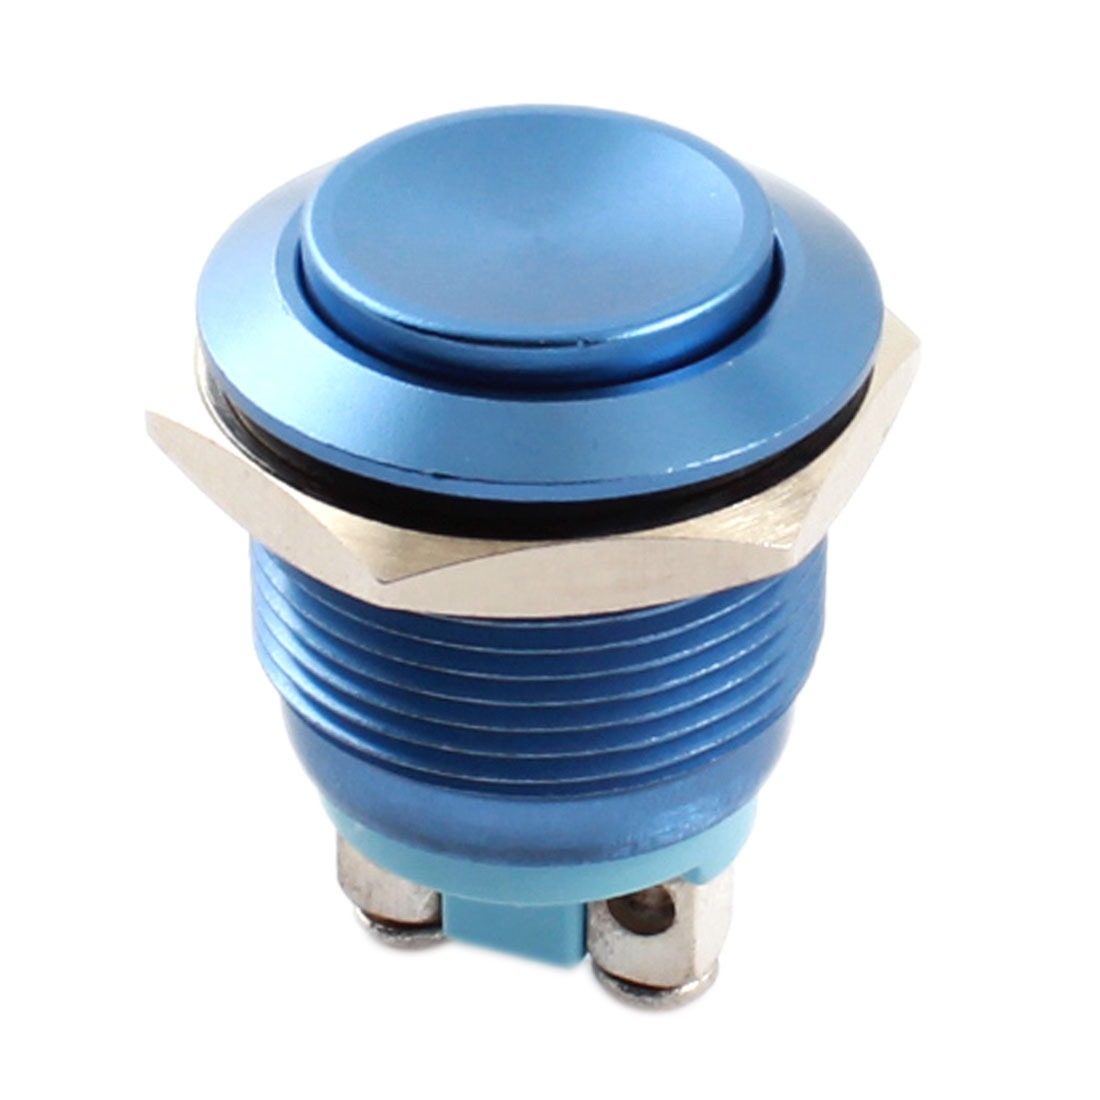 AC250V 5A 19mm Thread Panel Mount SPST 2 Terminals Normal Open Momentary Reset Metal Pushbutton Switch Blue